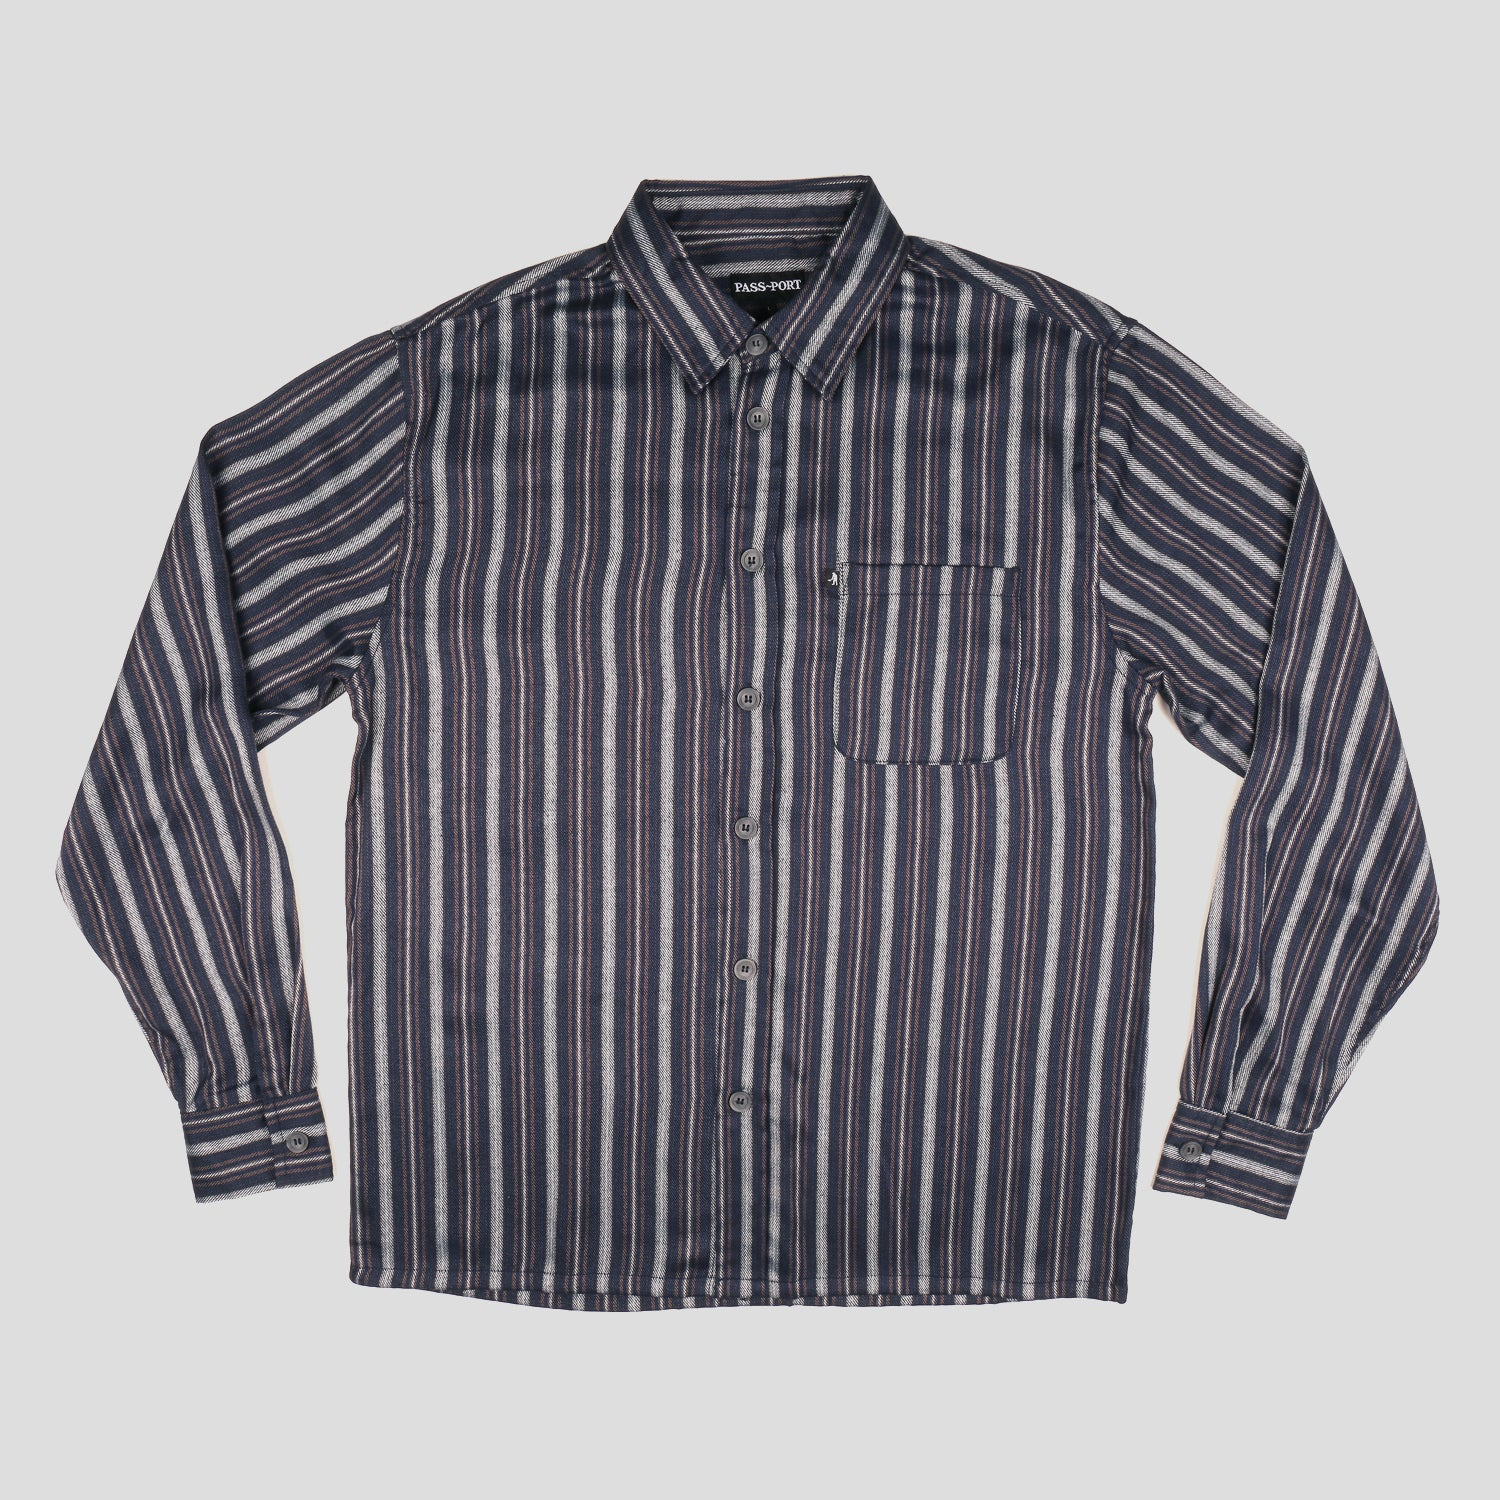 Workers Stripe Shirts - Longsleeve (Navy)